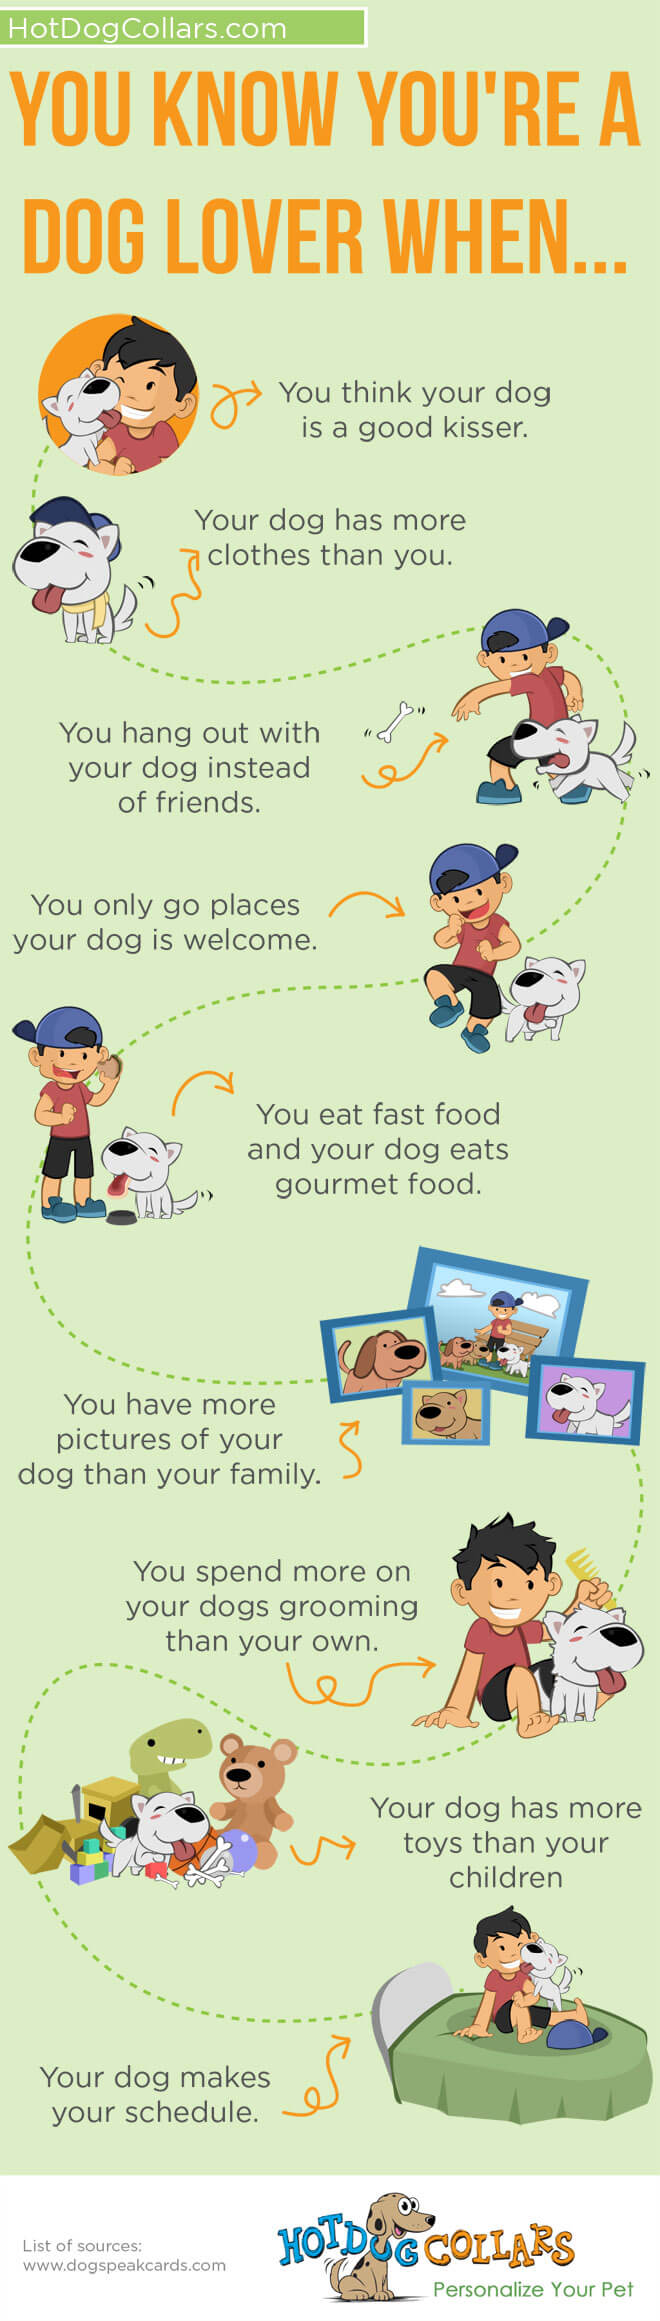 Where do you rank among other faithful dog owners? Test how many of these points are true for you and comment below